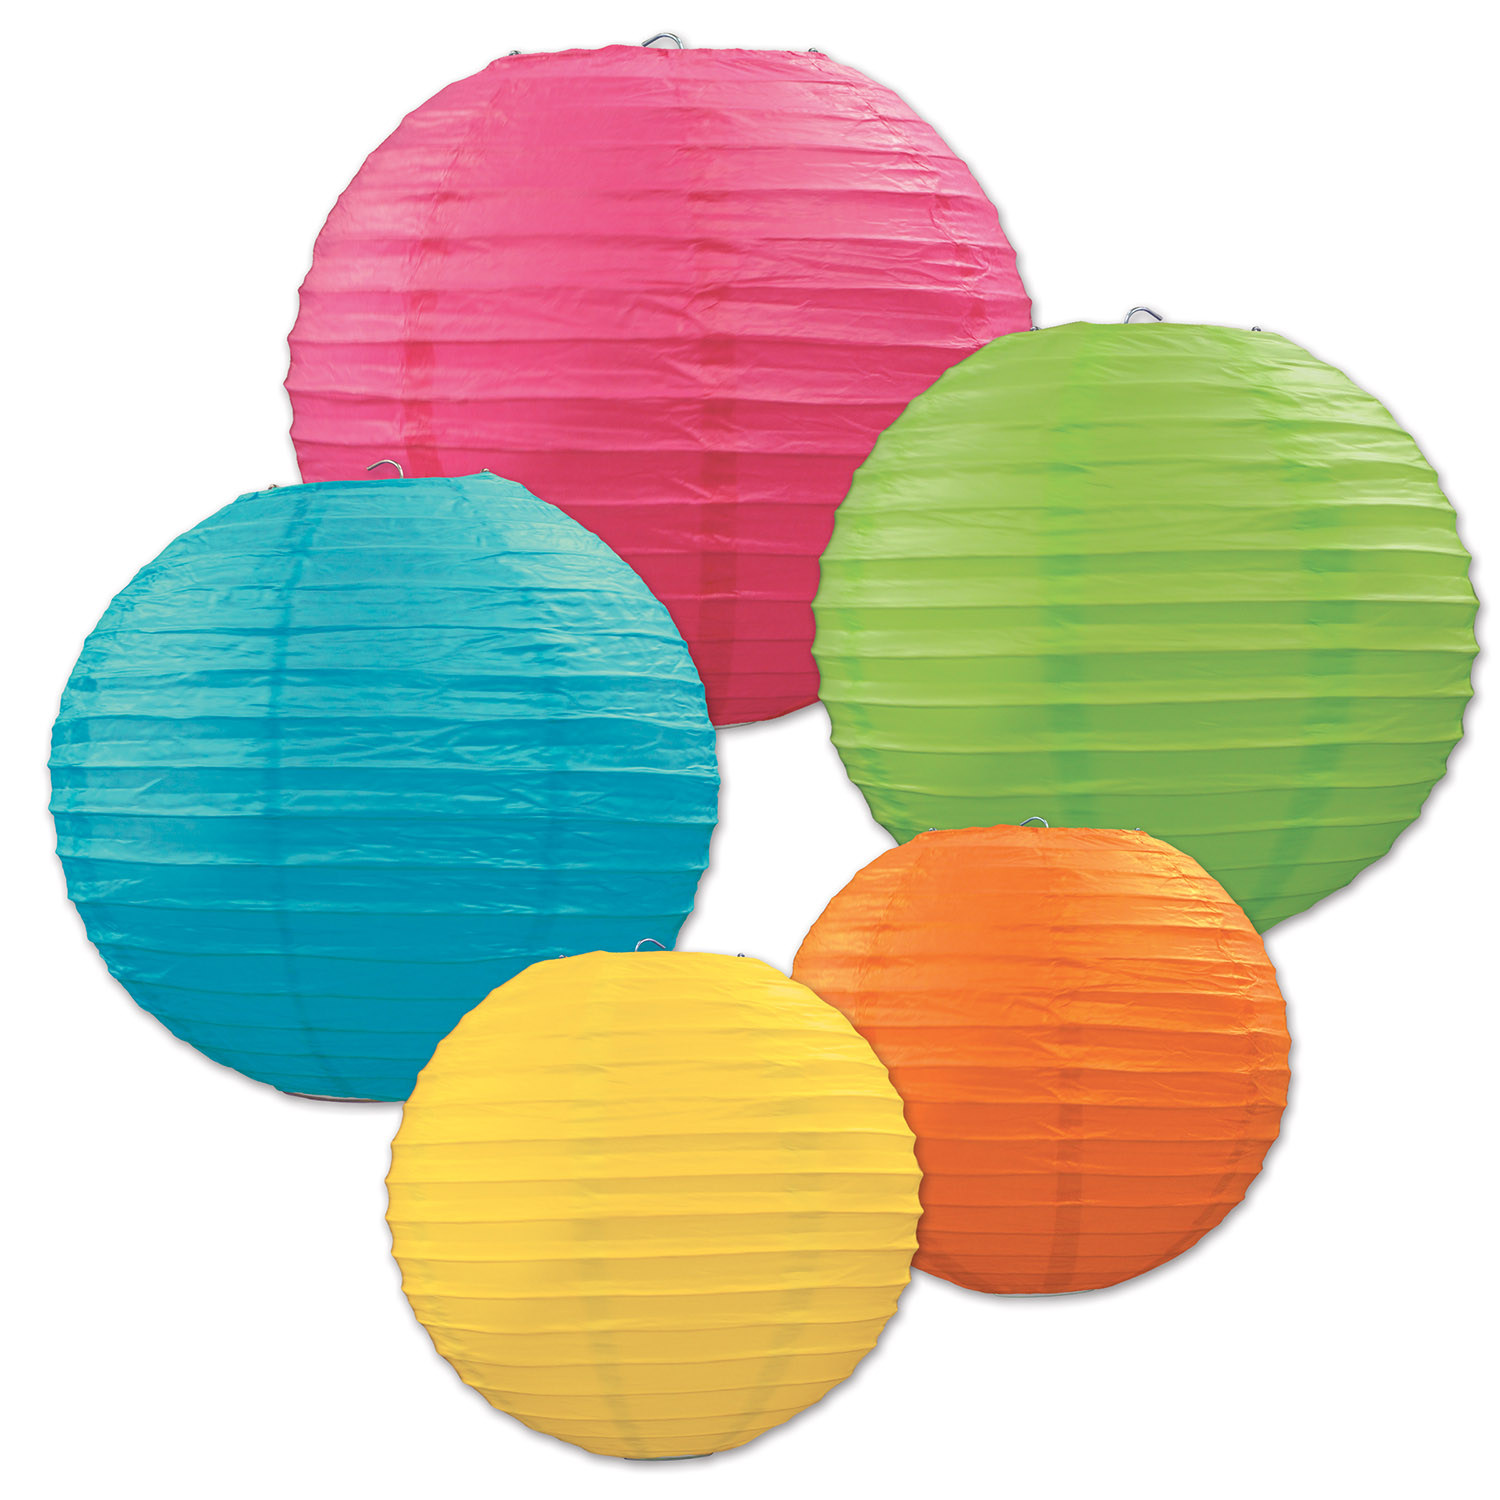 Paper Lantern Assortment (Pack of 30) Colorful paper lanterns, colored light-up paper lanterns, assorted size lanterns, colorful lanterns, paper lanterns